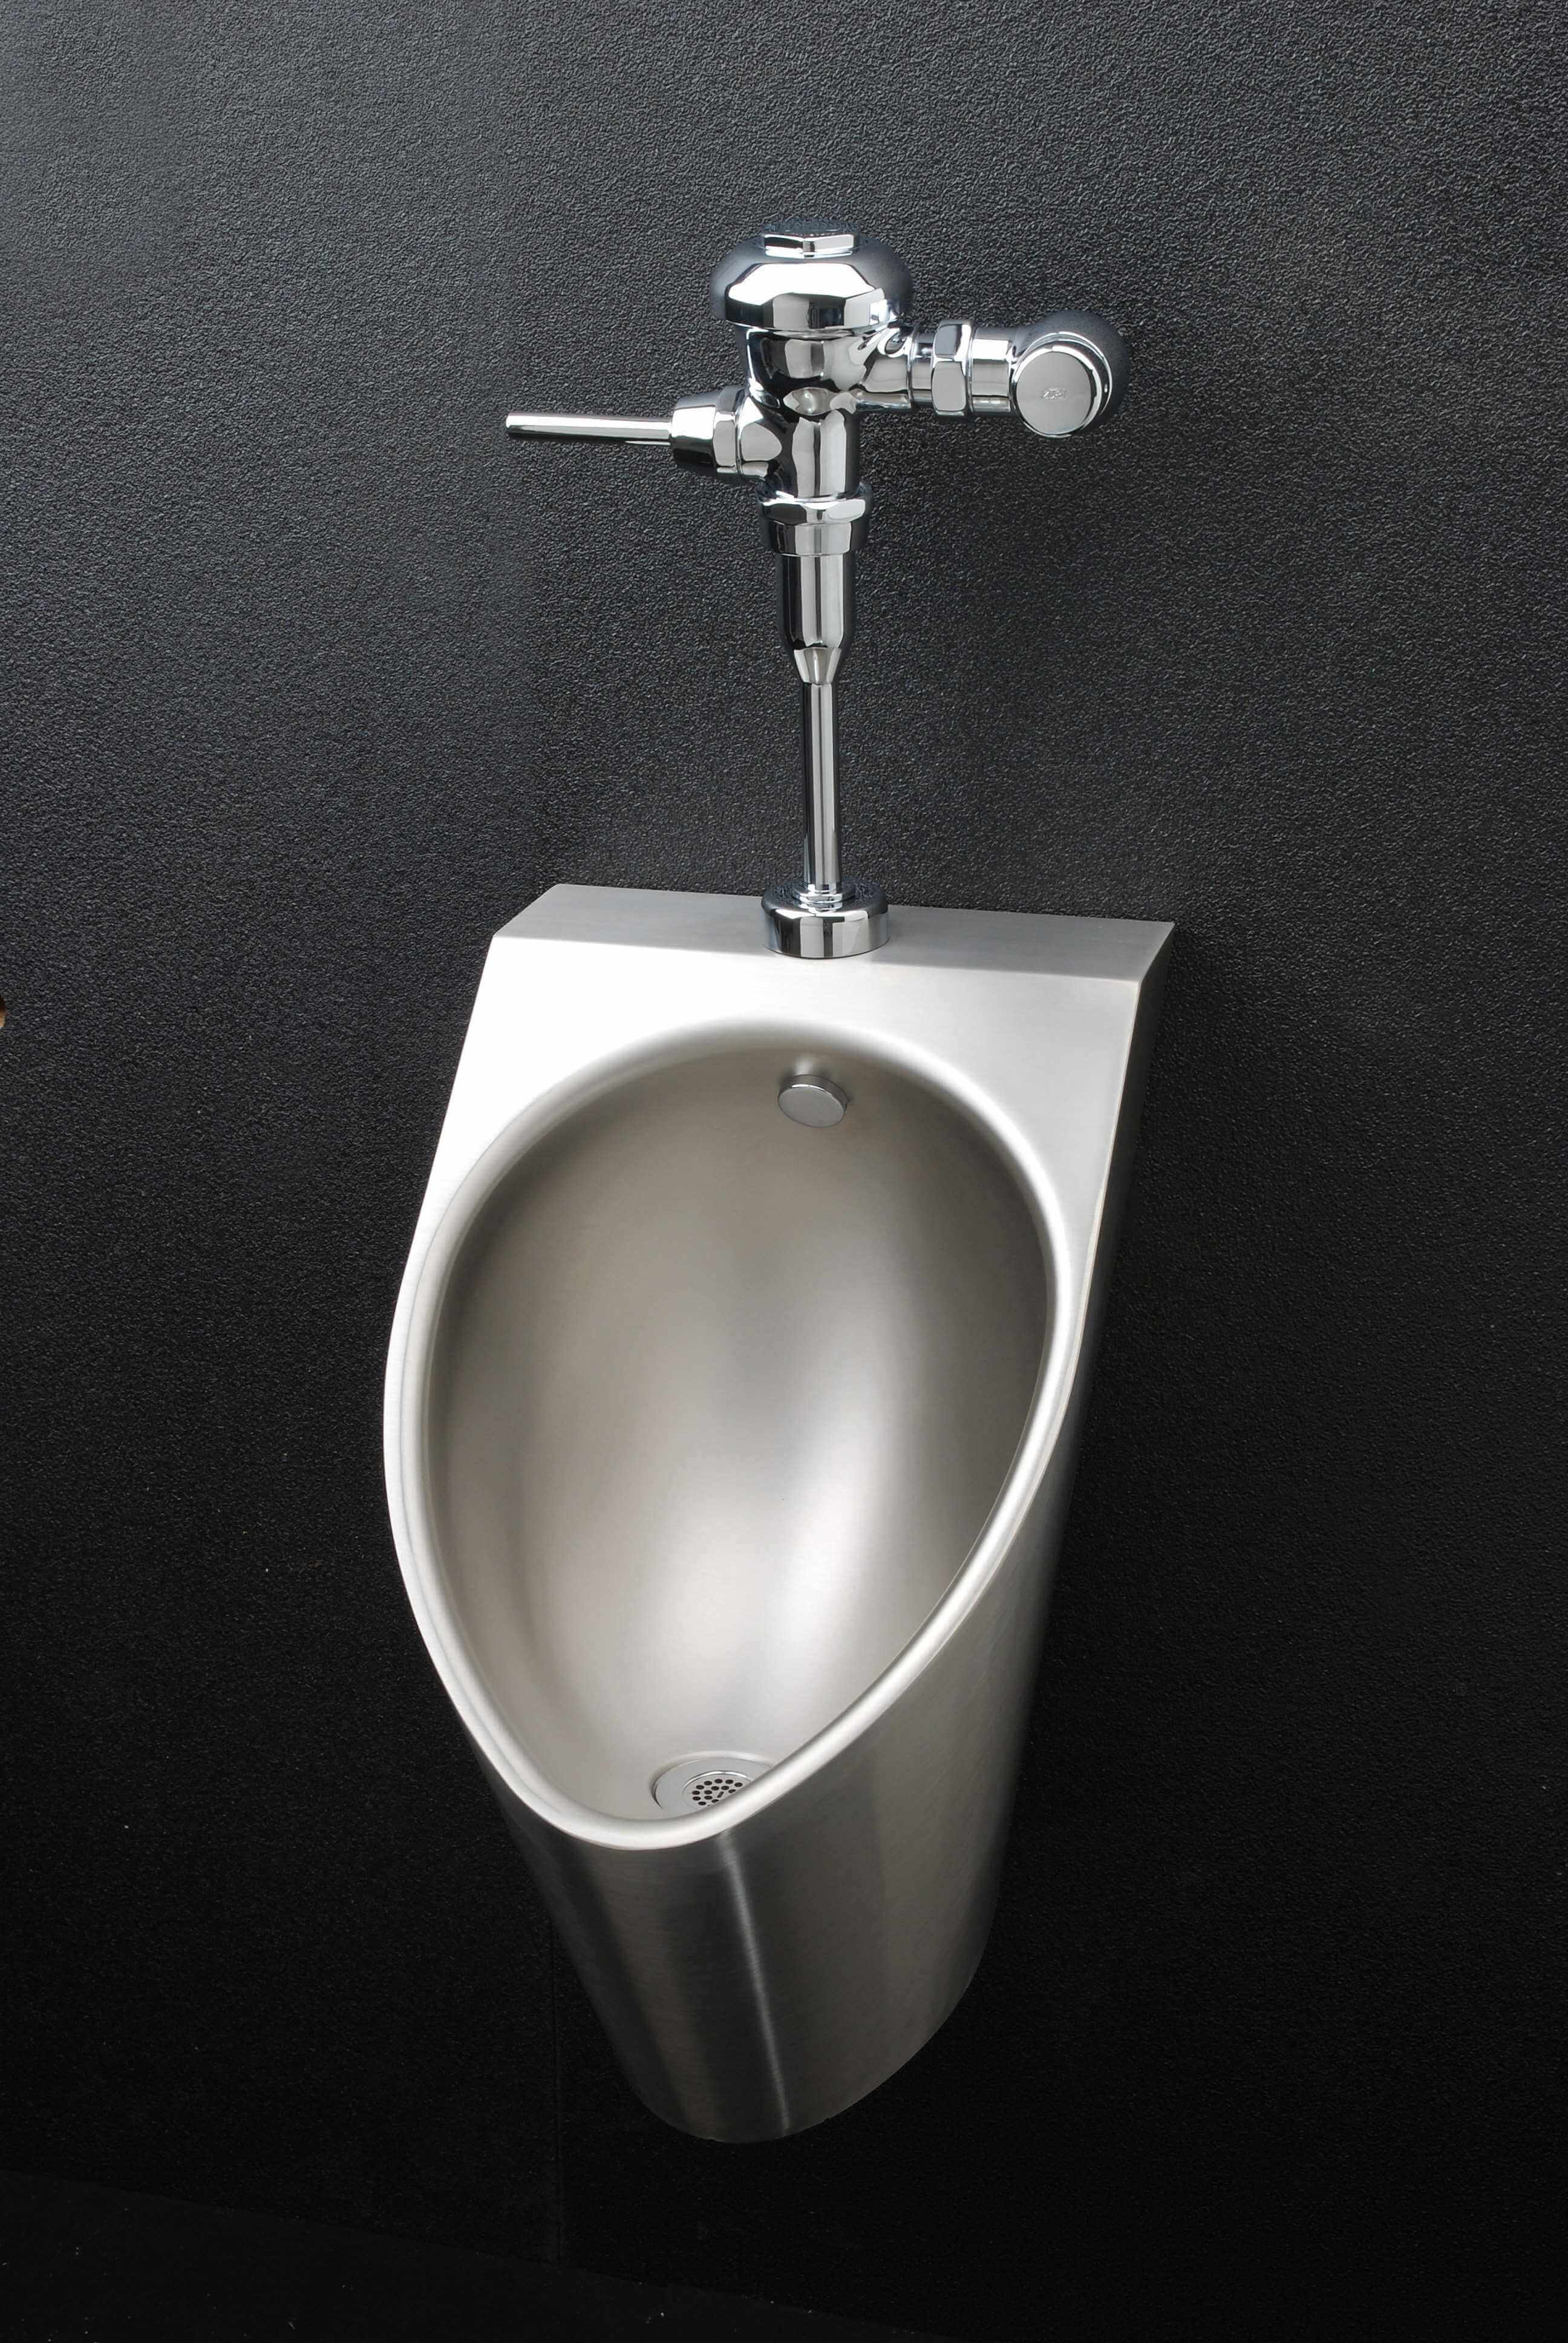 Acorn Engineering High Efficiency Urinal